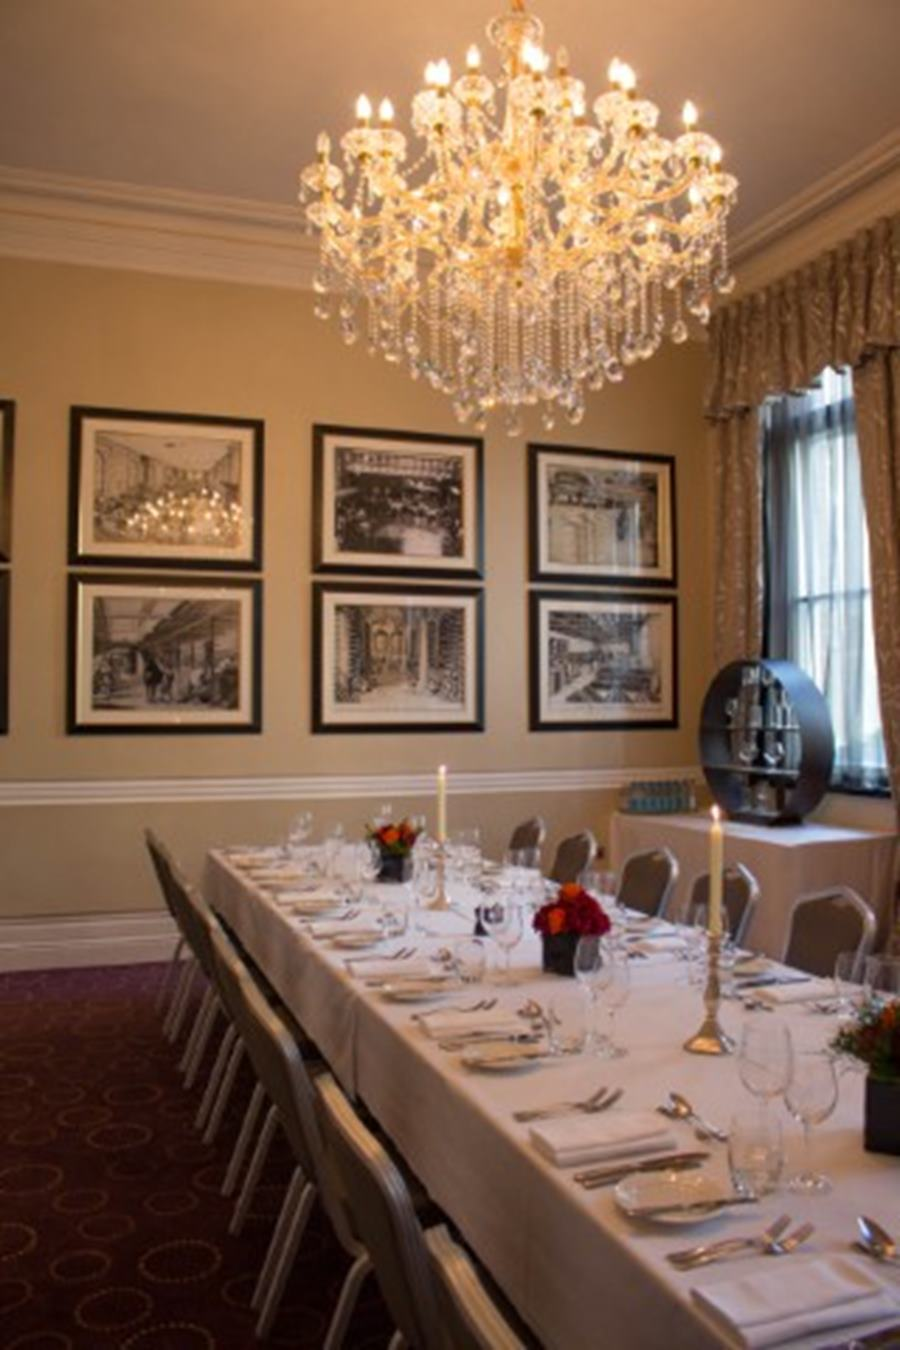 melville room | dining | chiswell street dining rooms